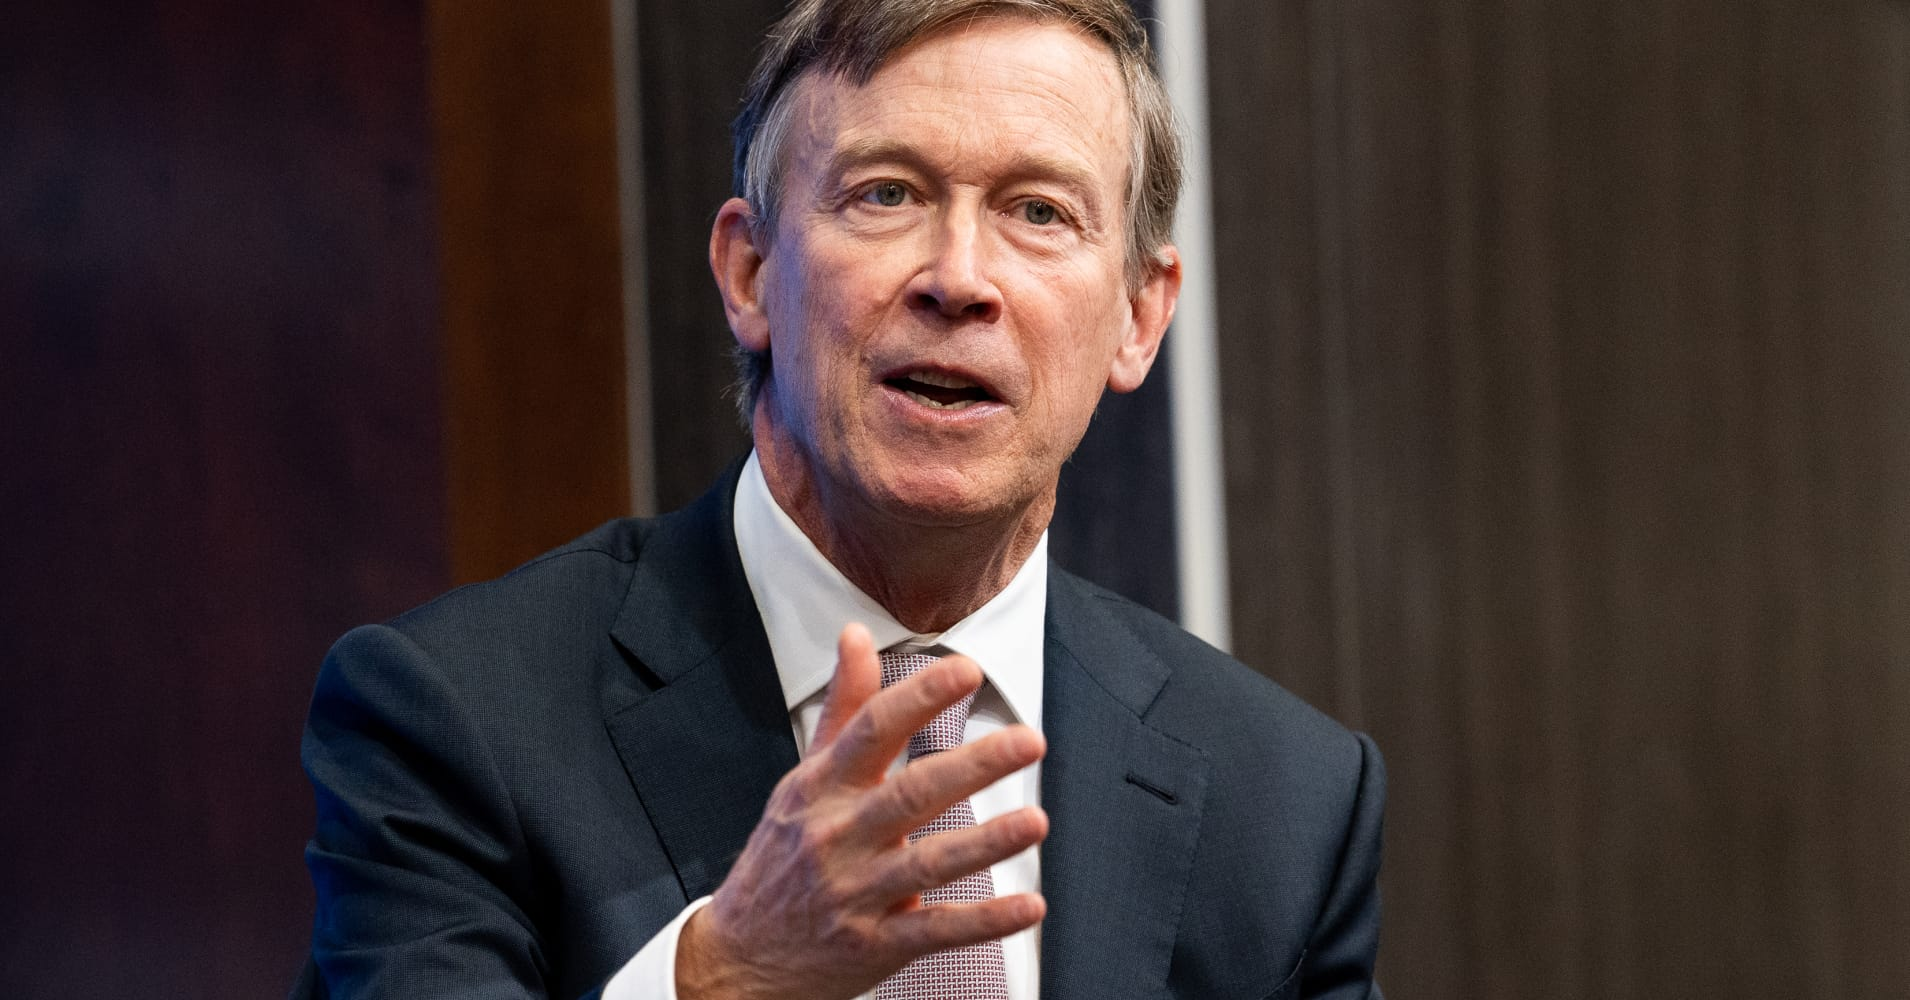 Former Colorado Gov. Hickenlooper enters the 2020 presidential race